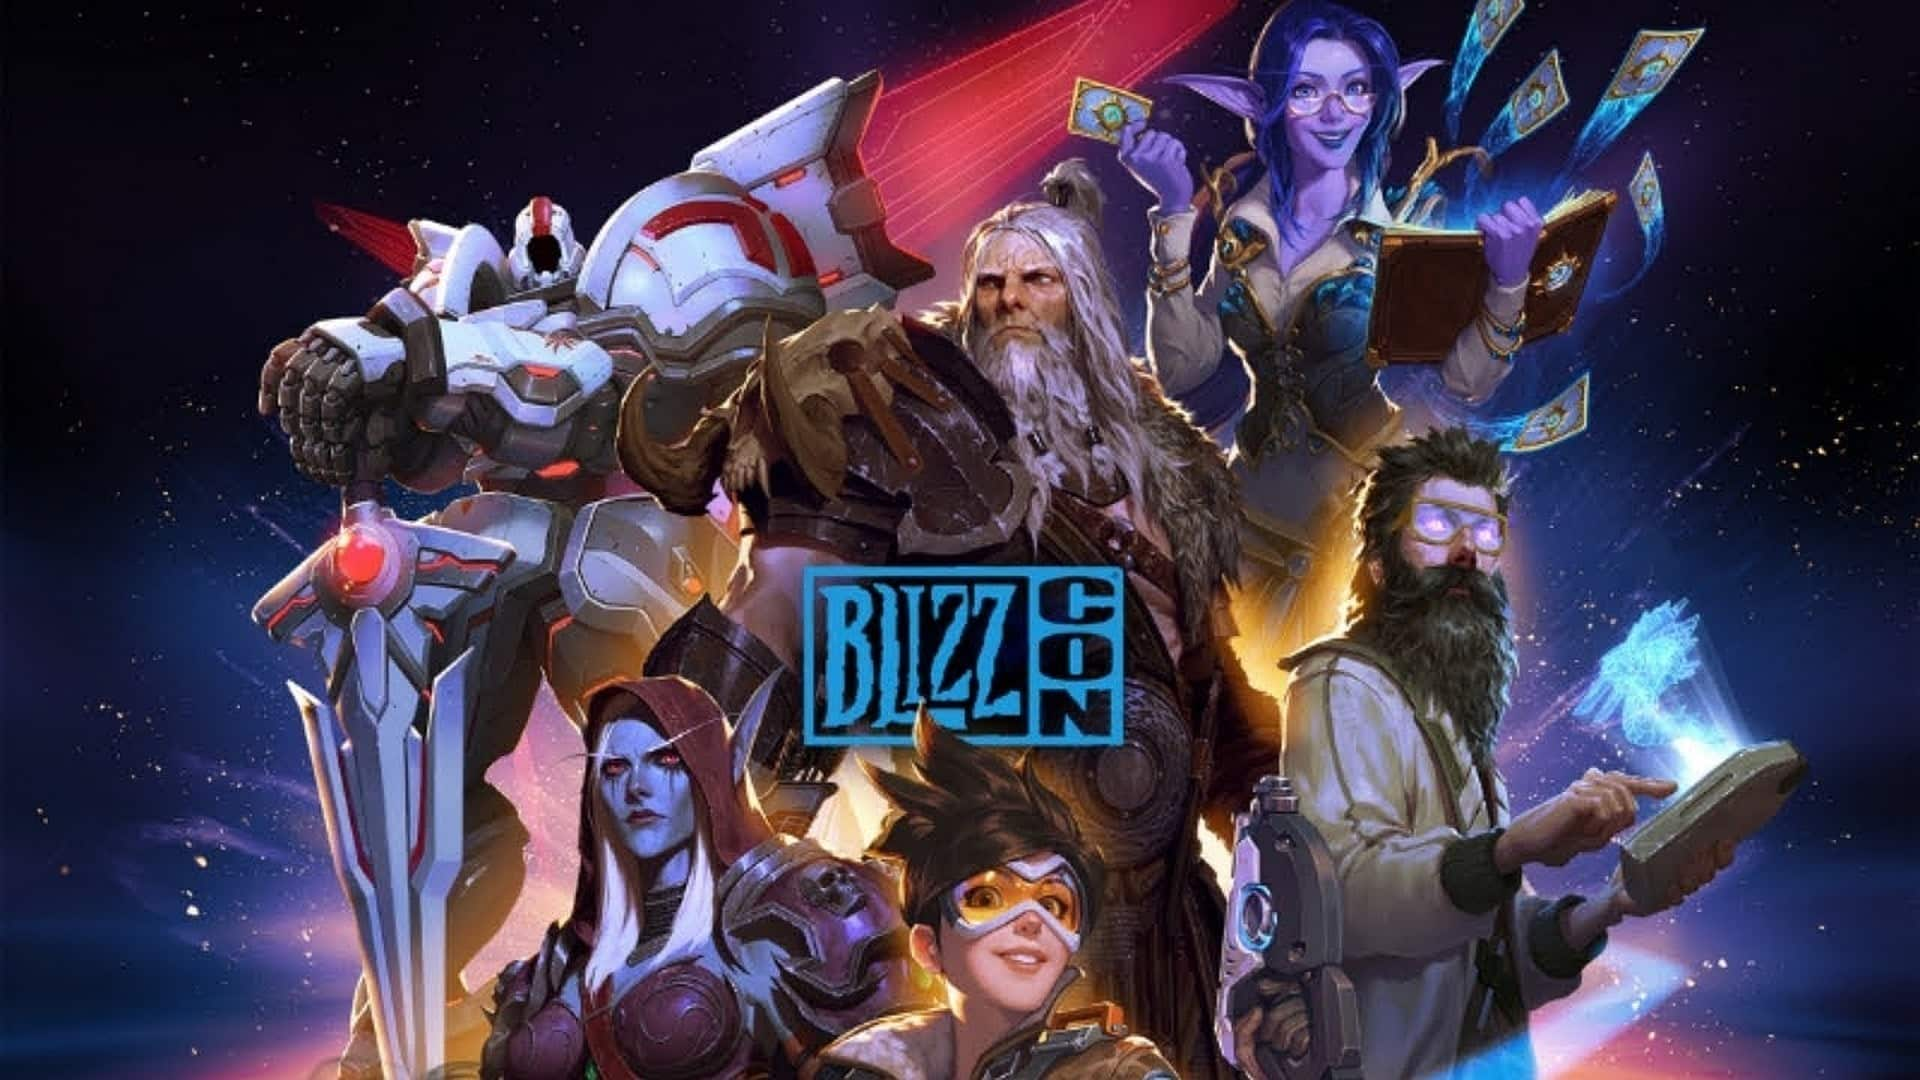 Blizzard Announces Digital 'BlizzConline' For February 2021 - GLITCHED